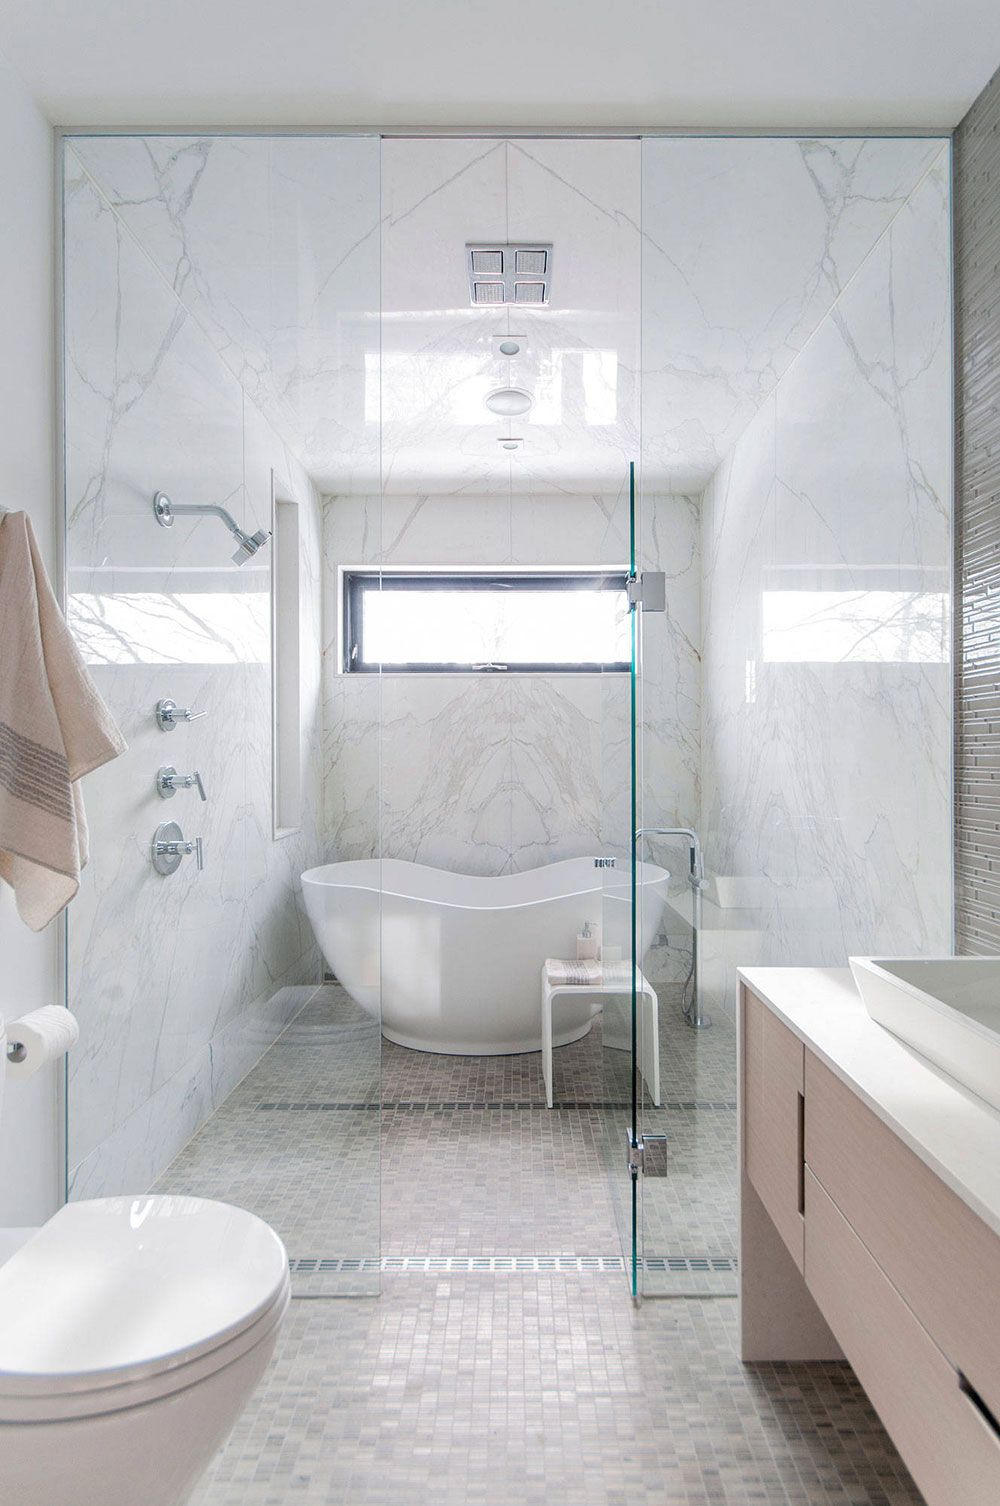 Wet Room Decor And Design Ideas Bathroom Tub Shower Combo Master Bathroom Shower Marble Bathroom Designs